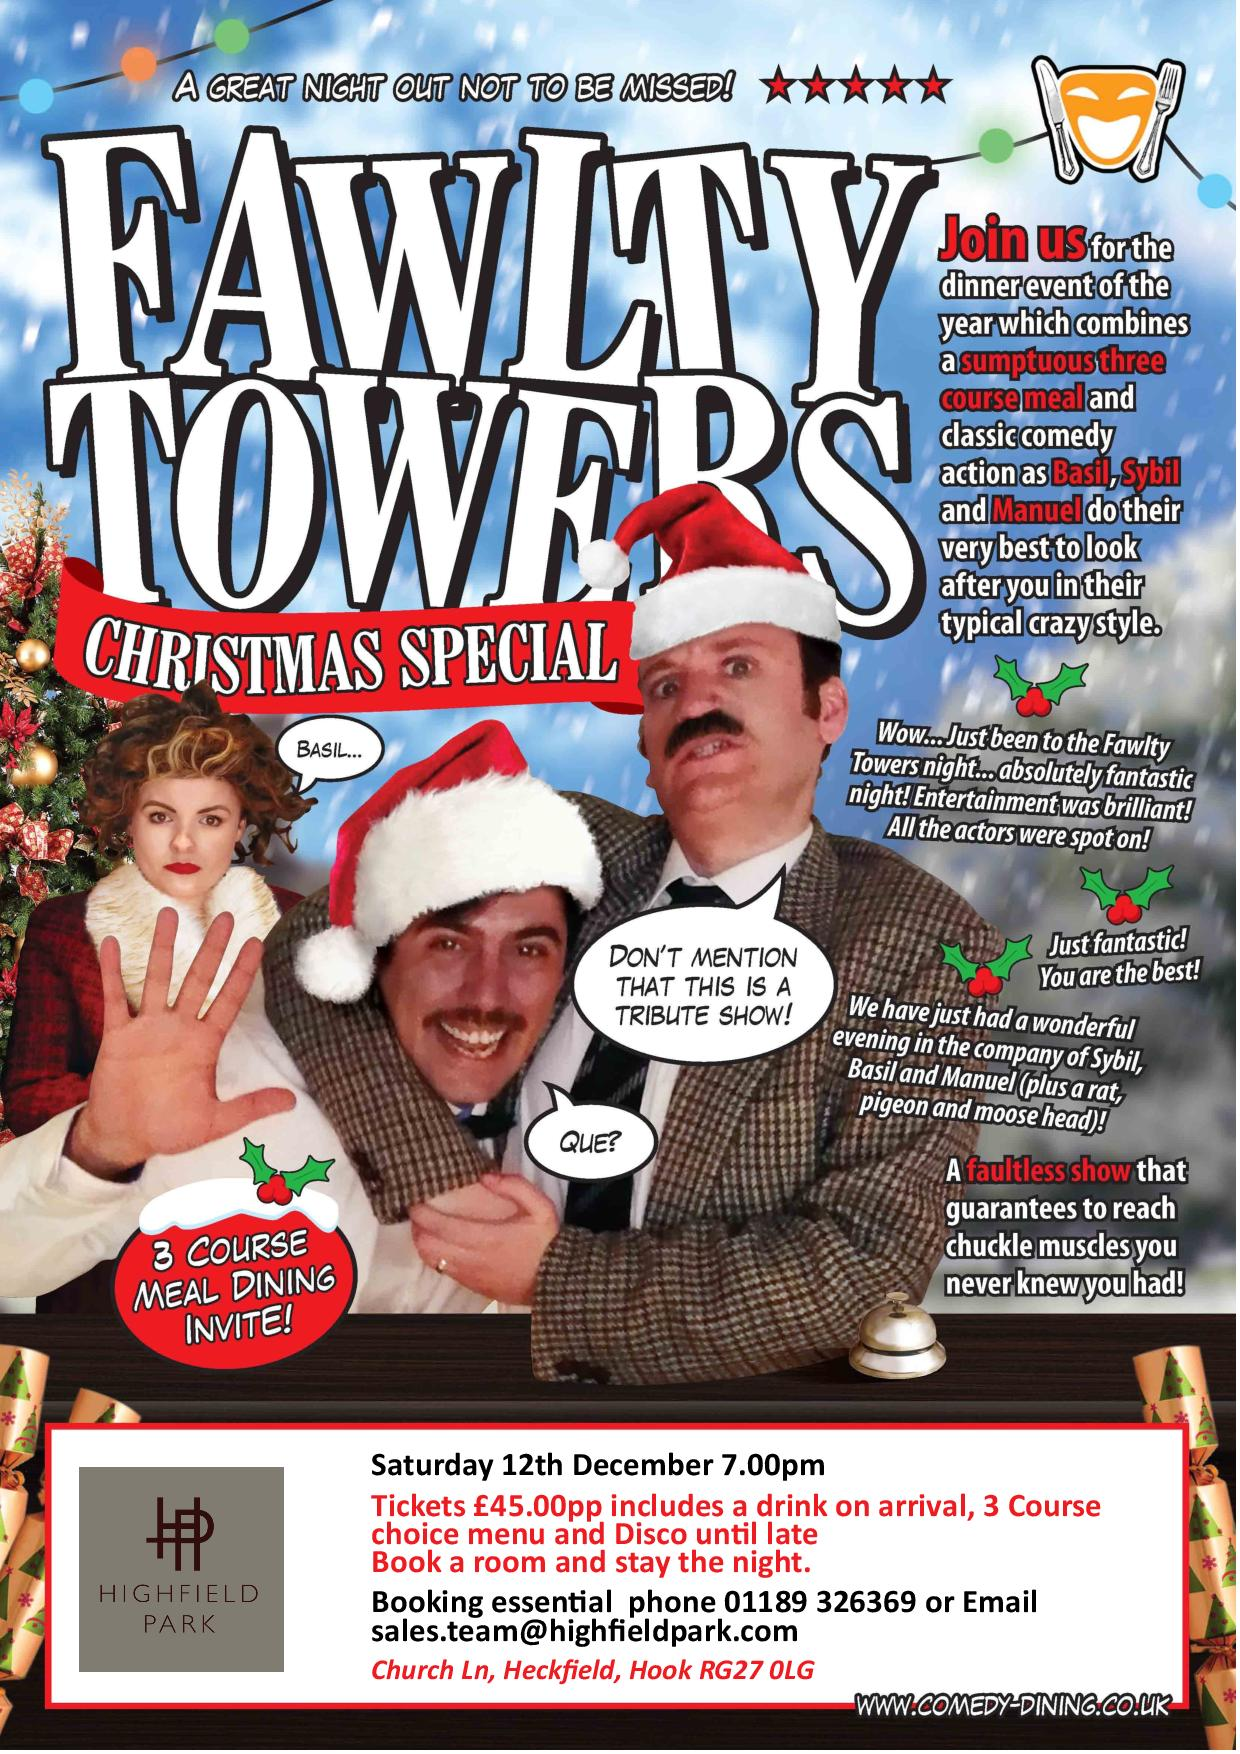 Fawlty Towers Christmas Special Comedy dinner